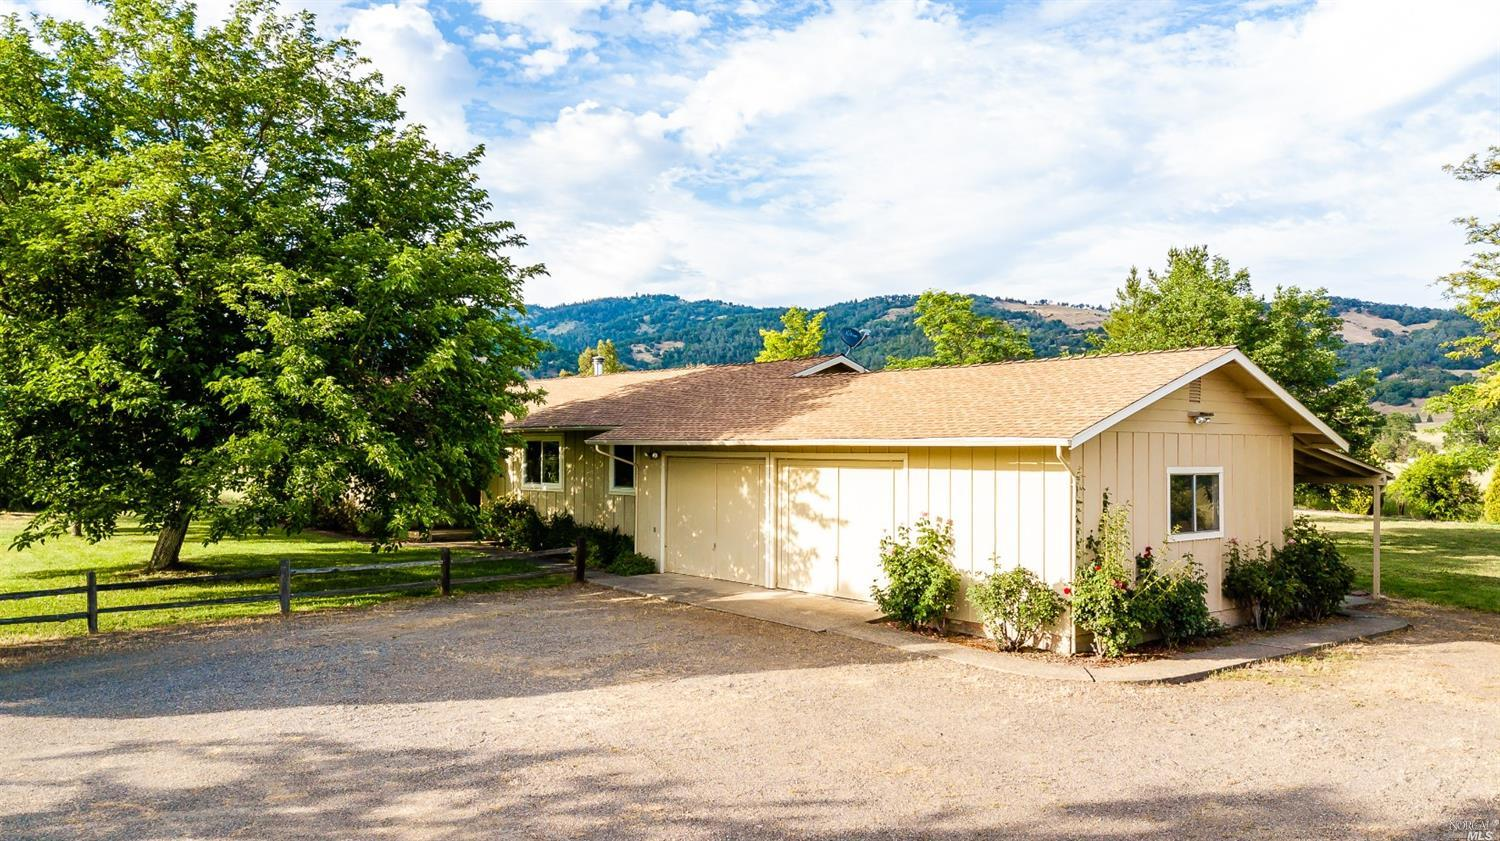 10325 E Side Potter Valley Road, Potter Valley, CA 95469